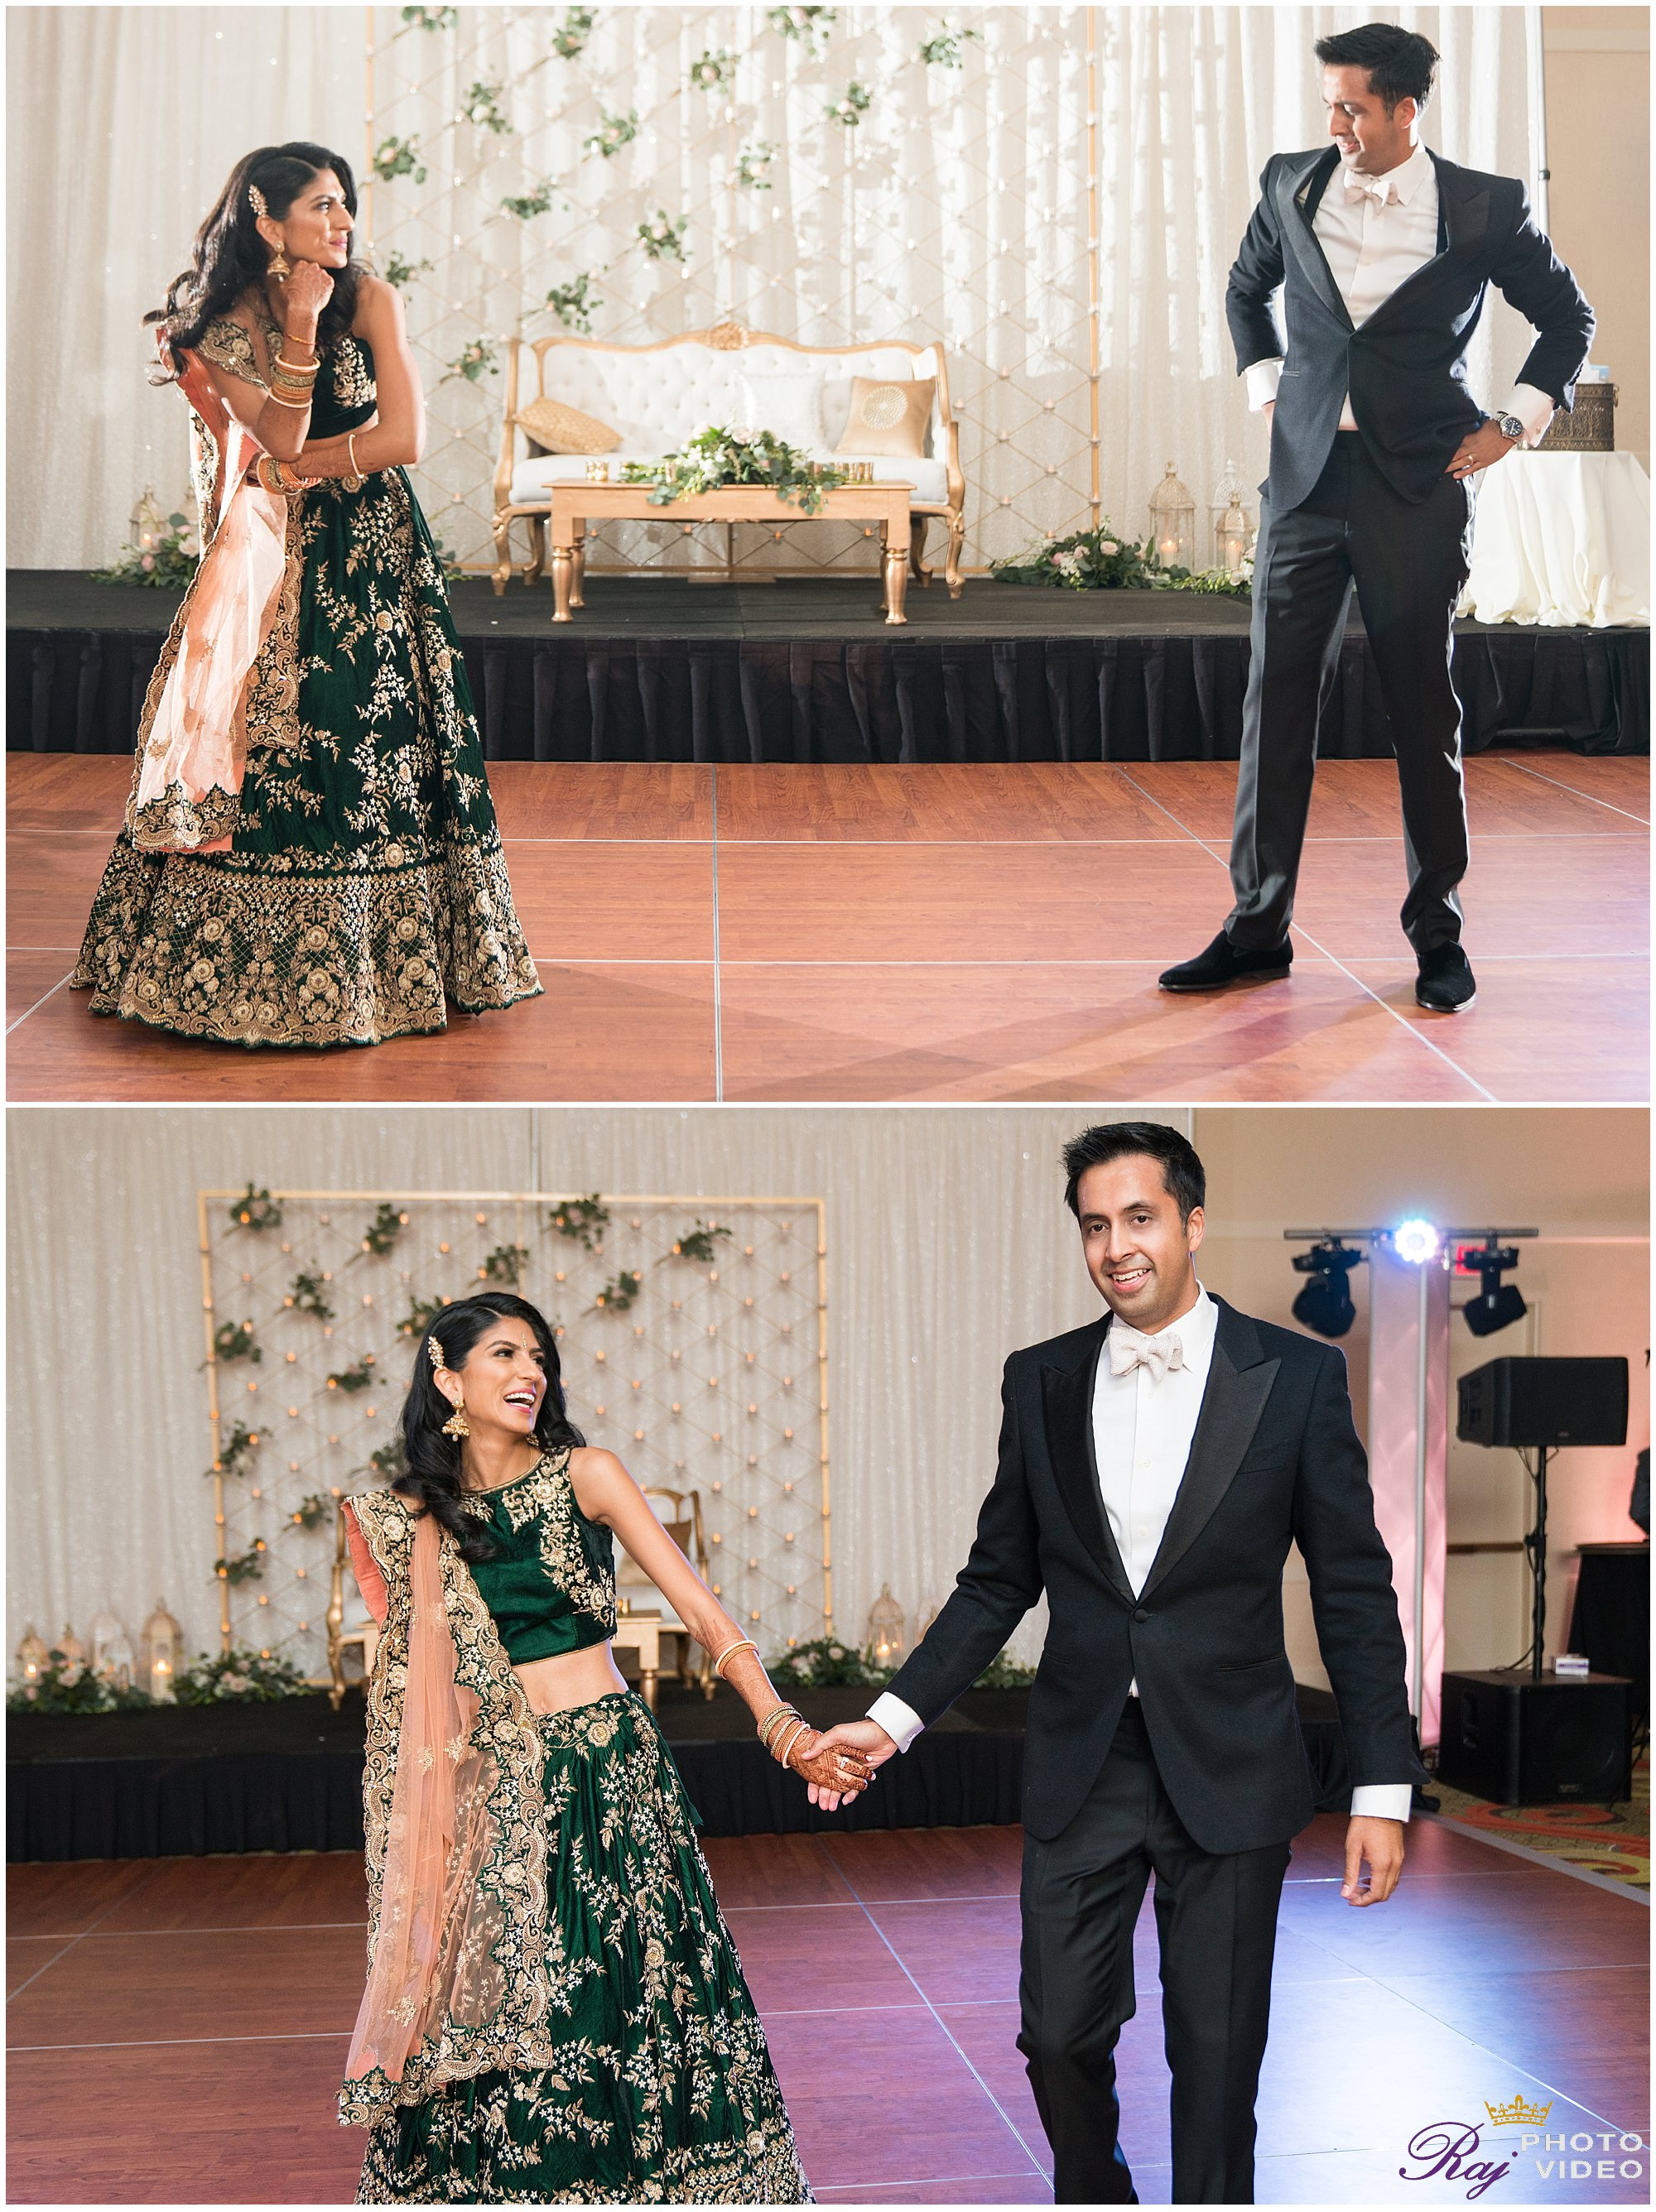 Scottsdale_Marriott_at_McDowell_Mountains_Arizona_Indian_Wedding_Sapna_Shyam-87.jpg